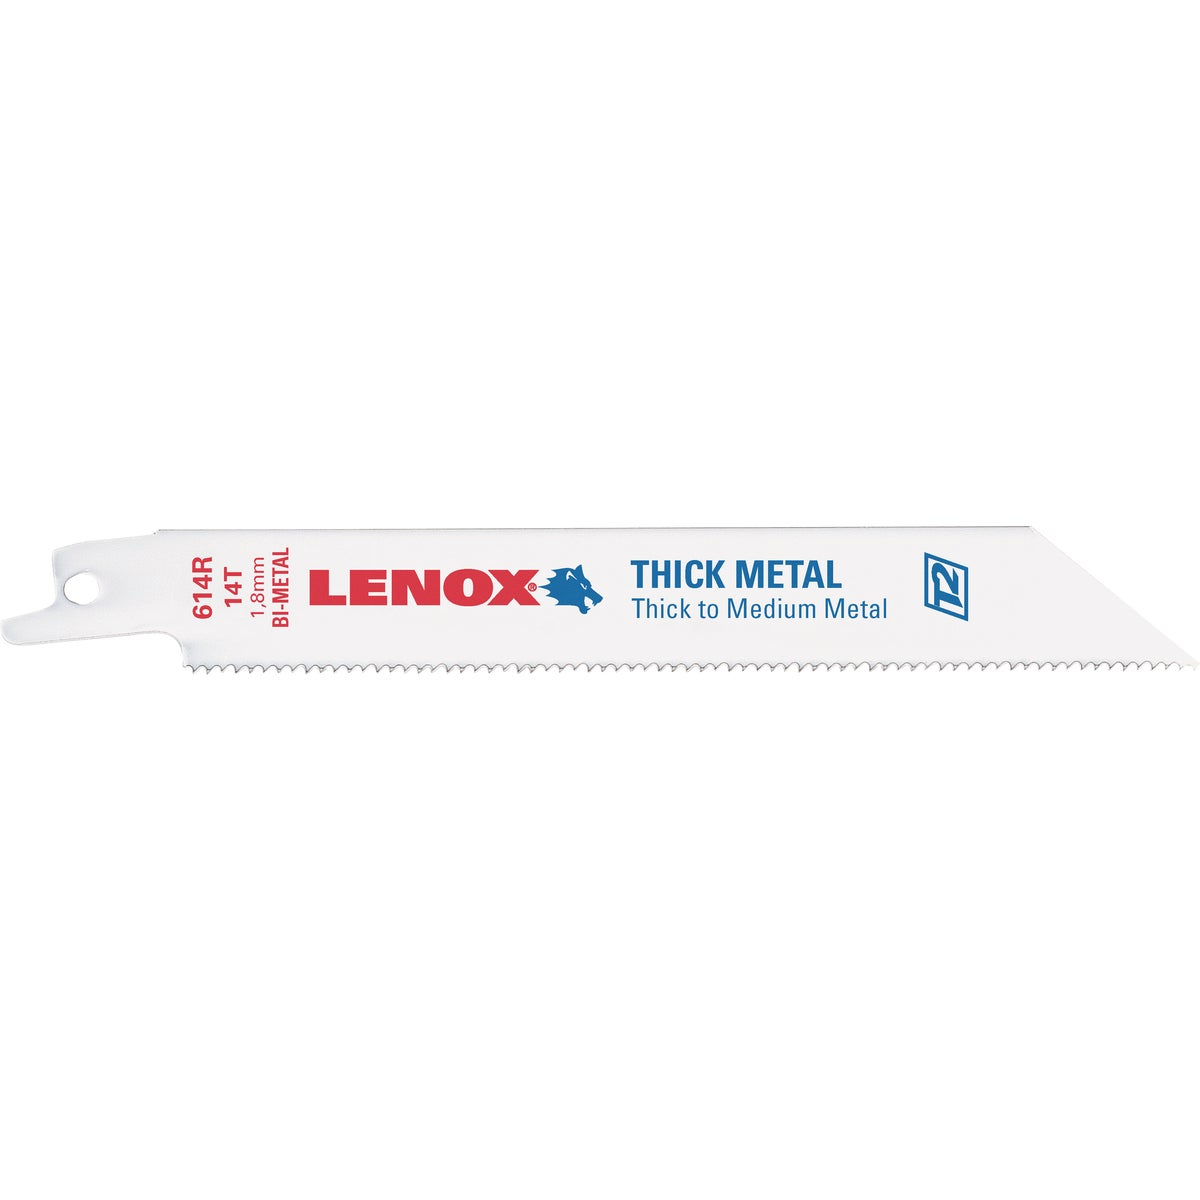 "6"" 14T RECIP SAW BLADE"